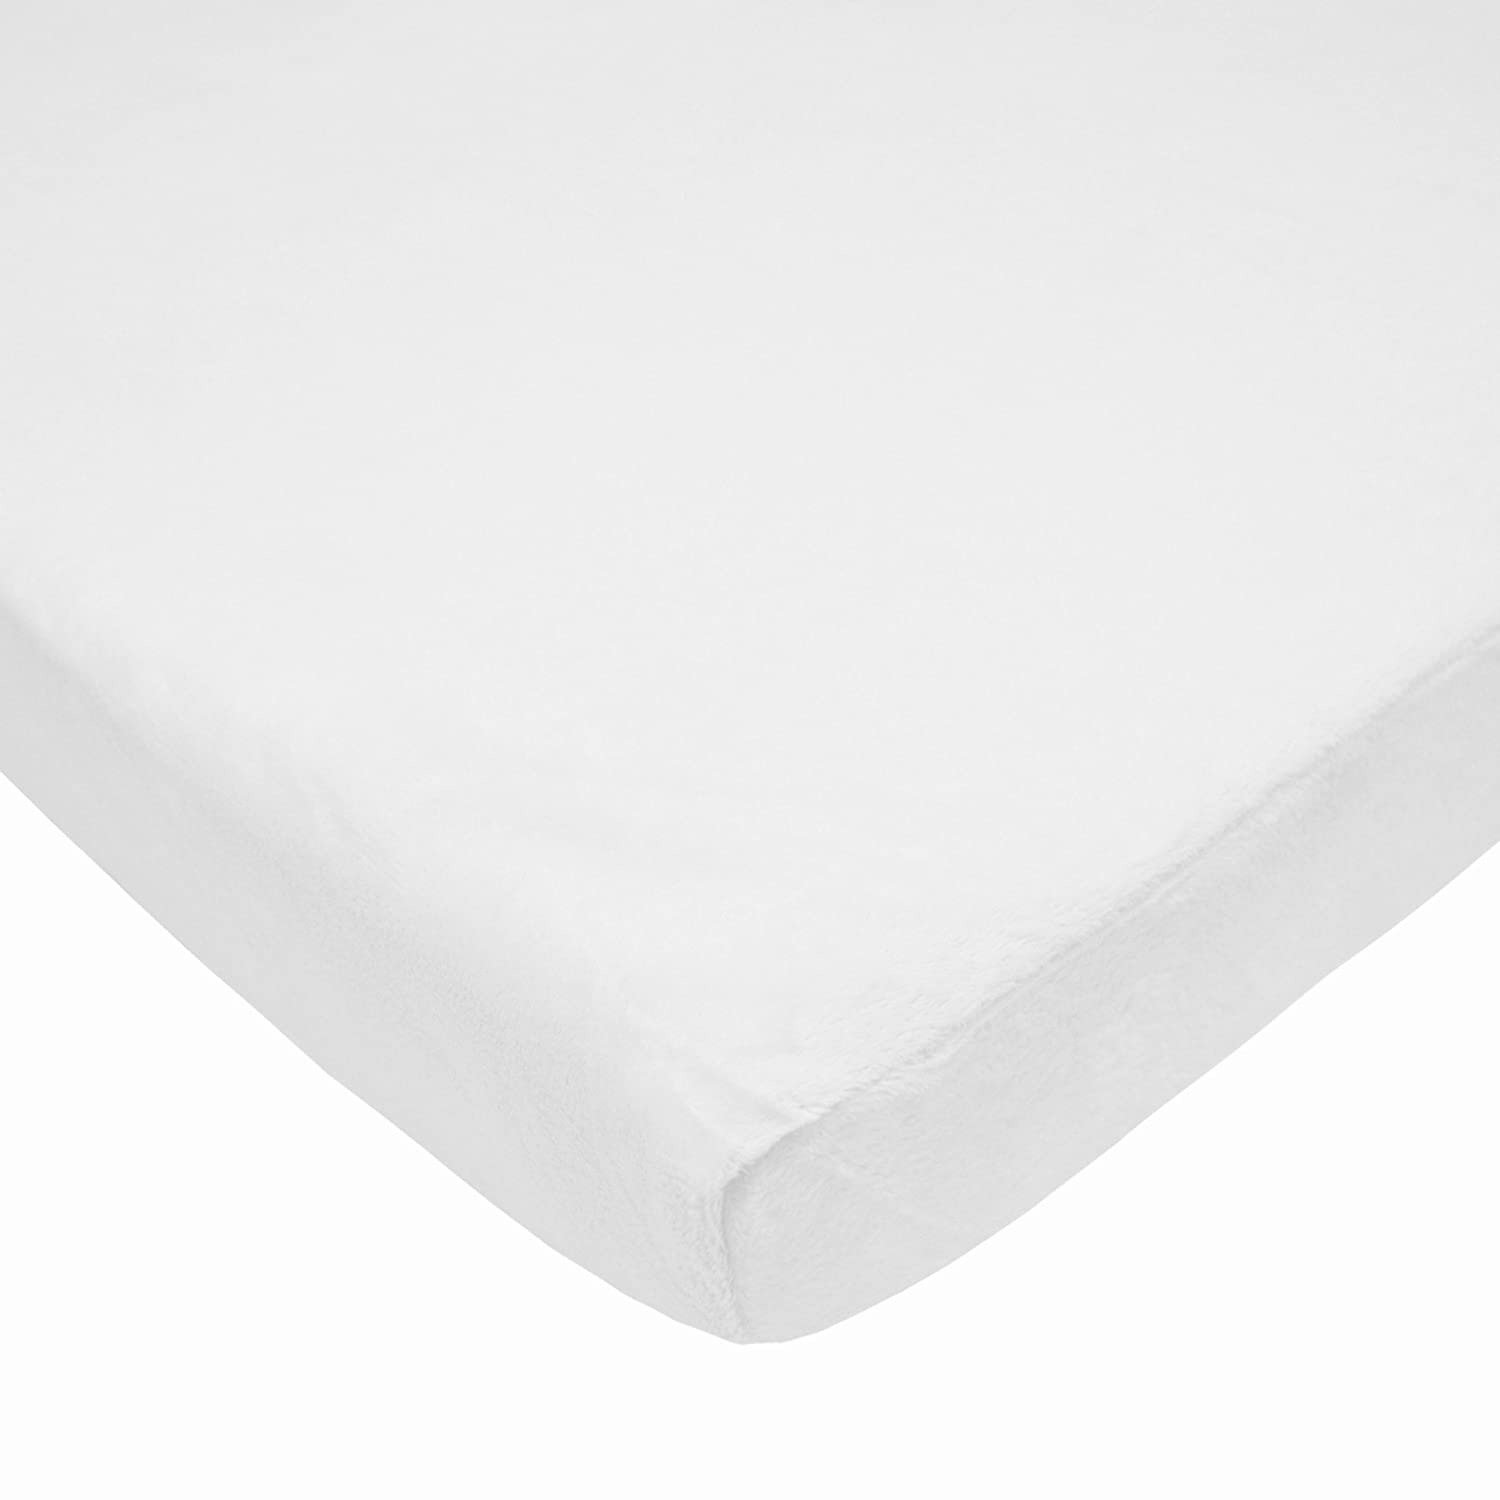 American Baby Company Fitted Portable//Mini-Crib Sheet,Heavenly Soft Chenille,White for Boys and Girls